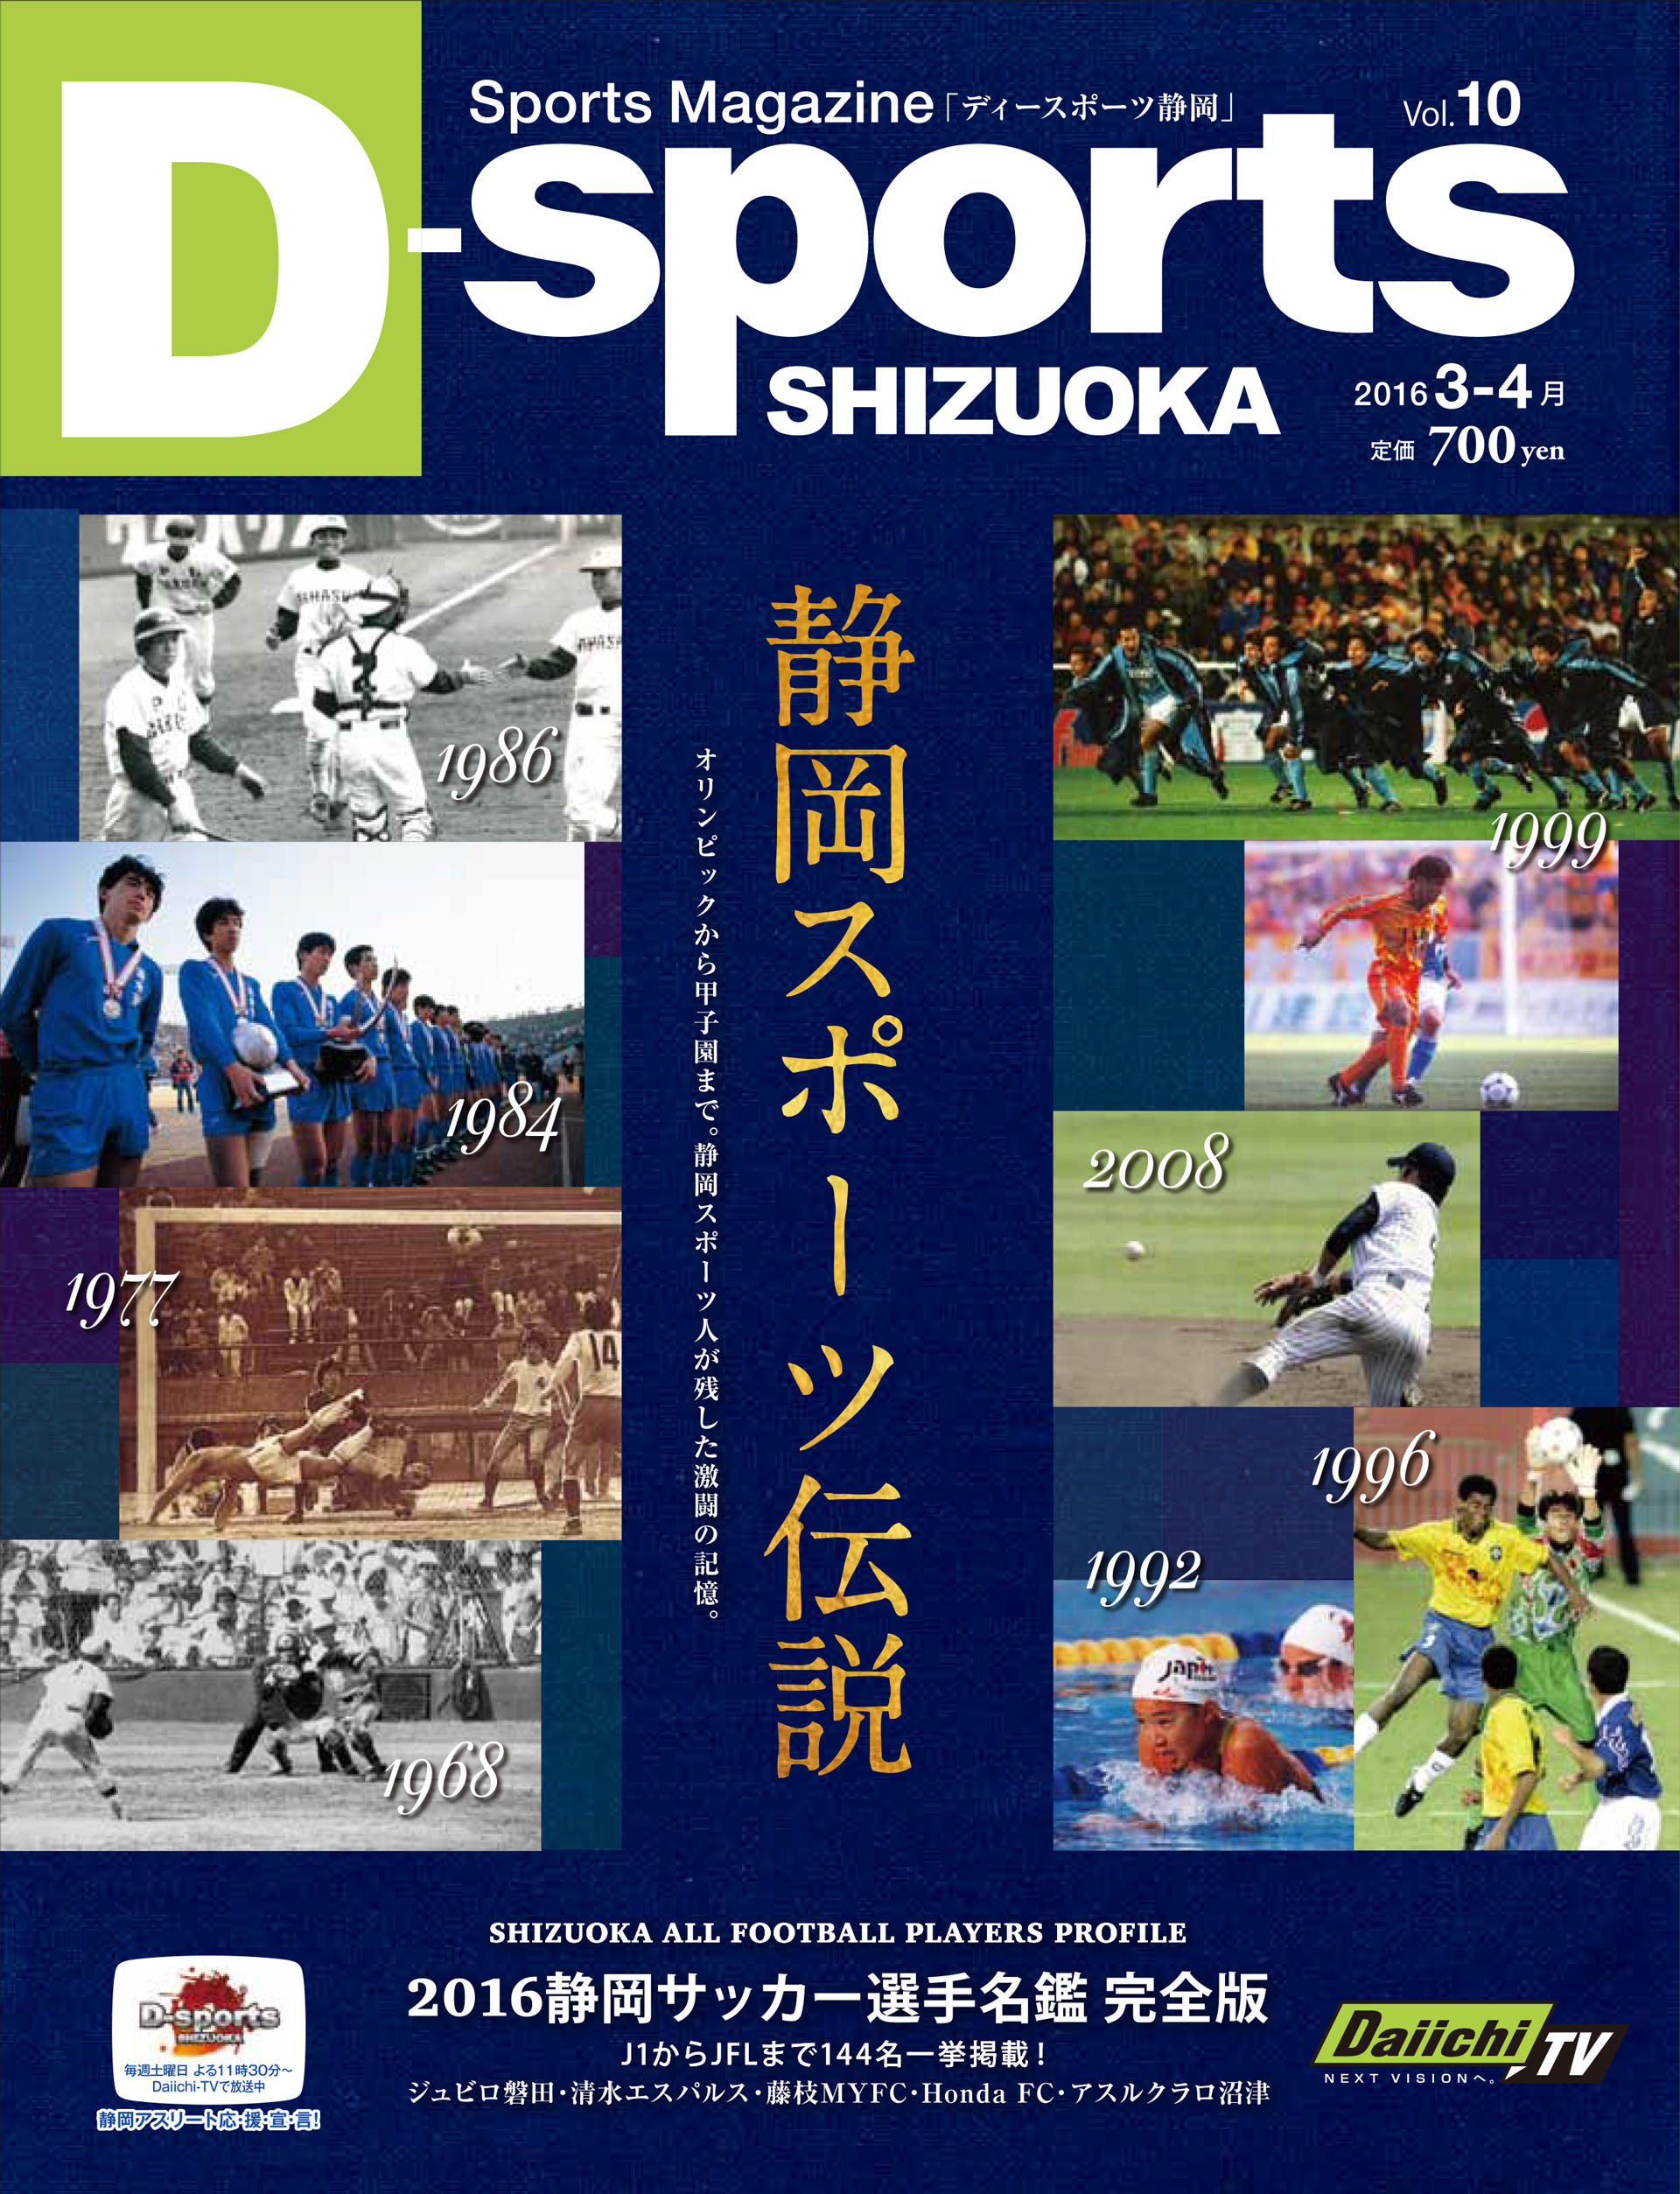 http://d-sports.shizuokastandard.jp/article/2016/vol10_h1.jpg